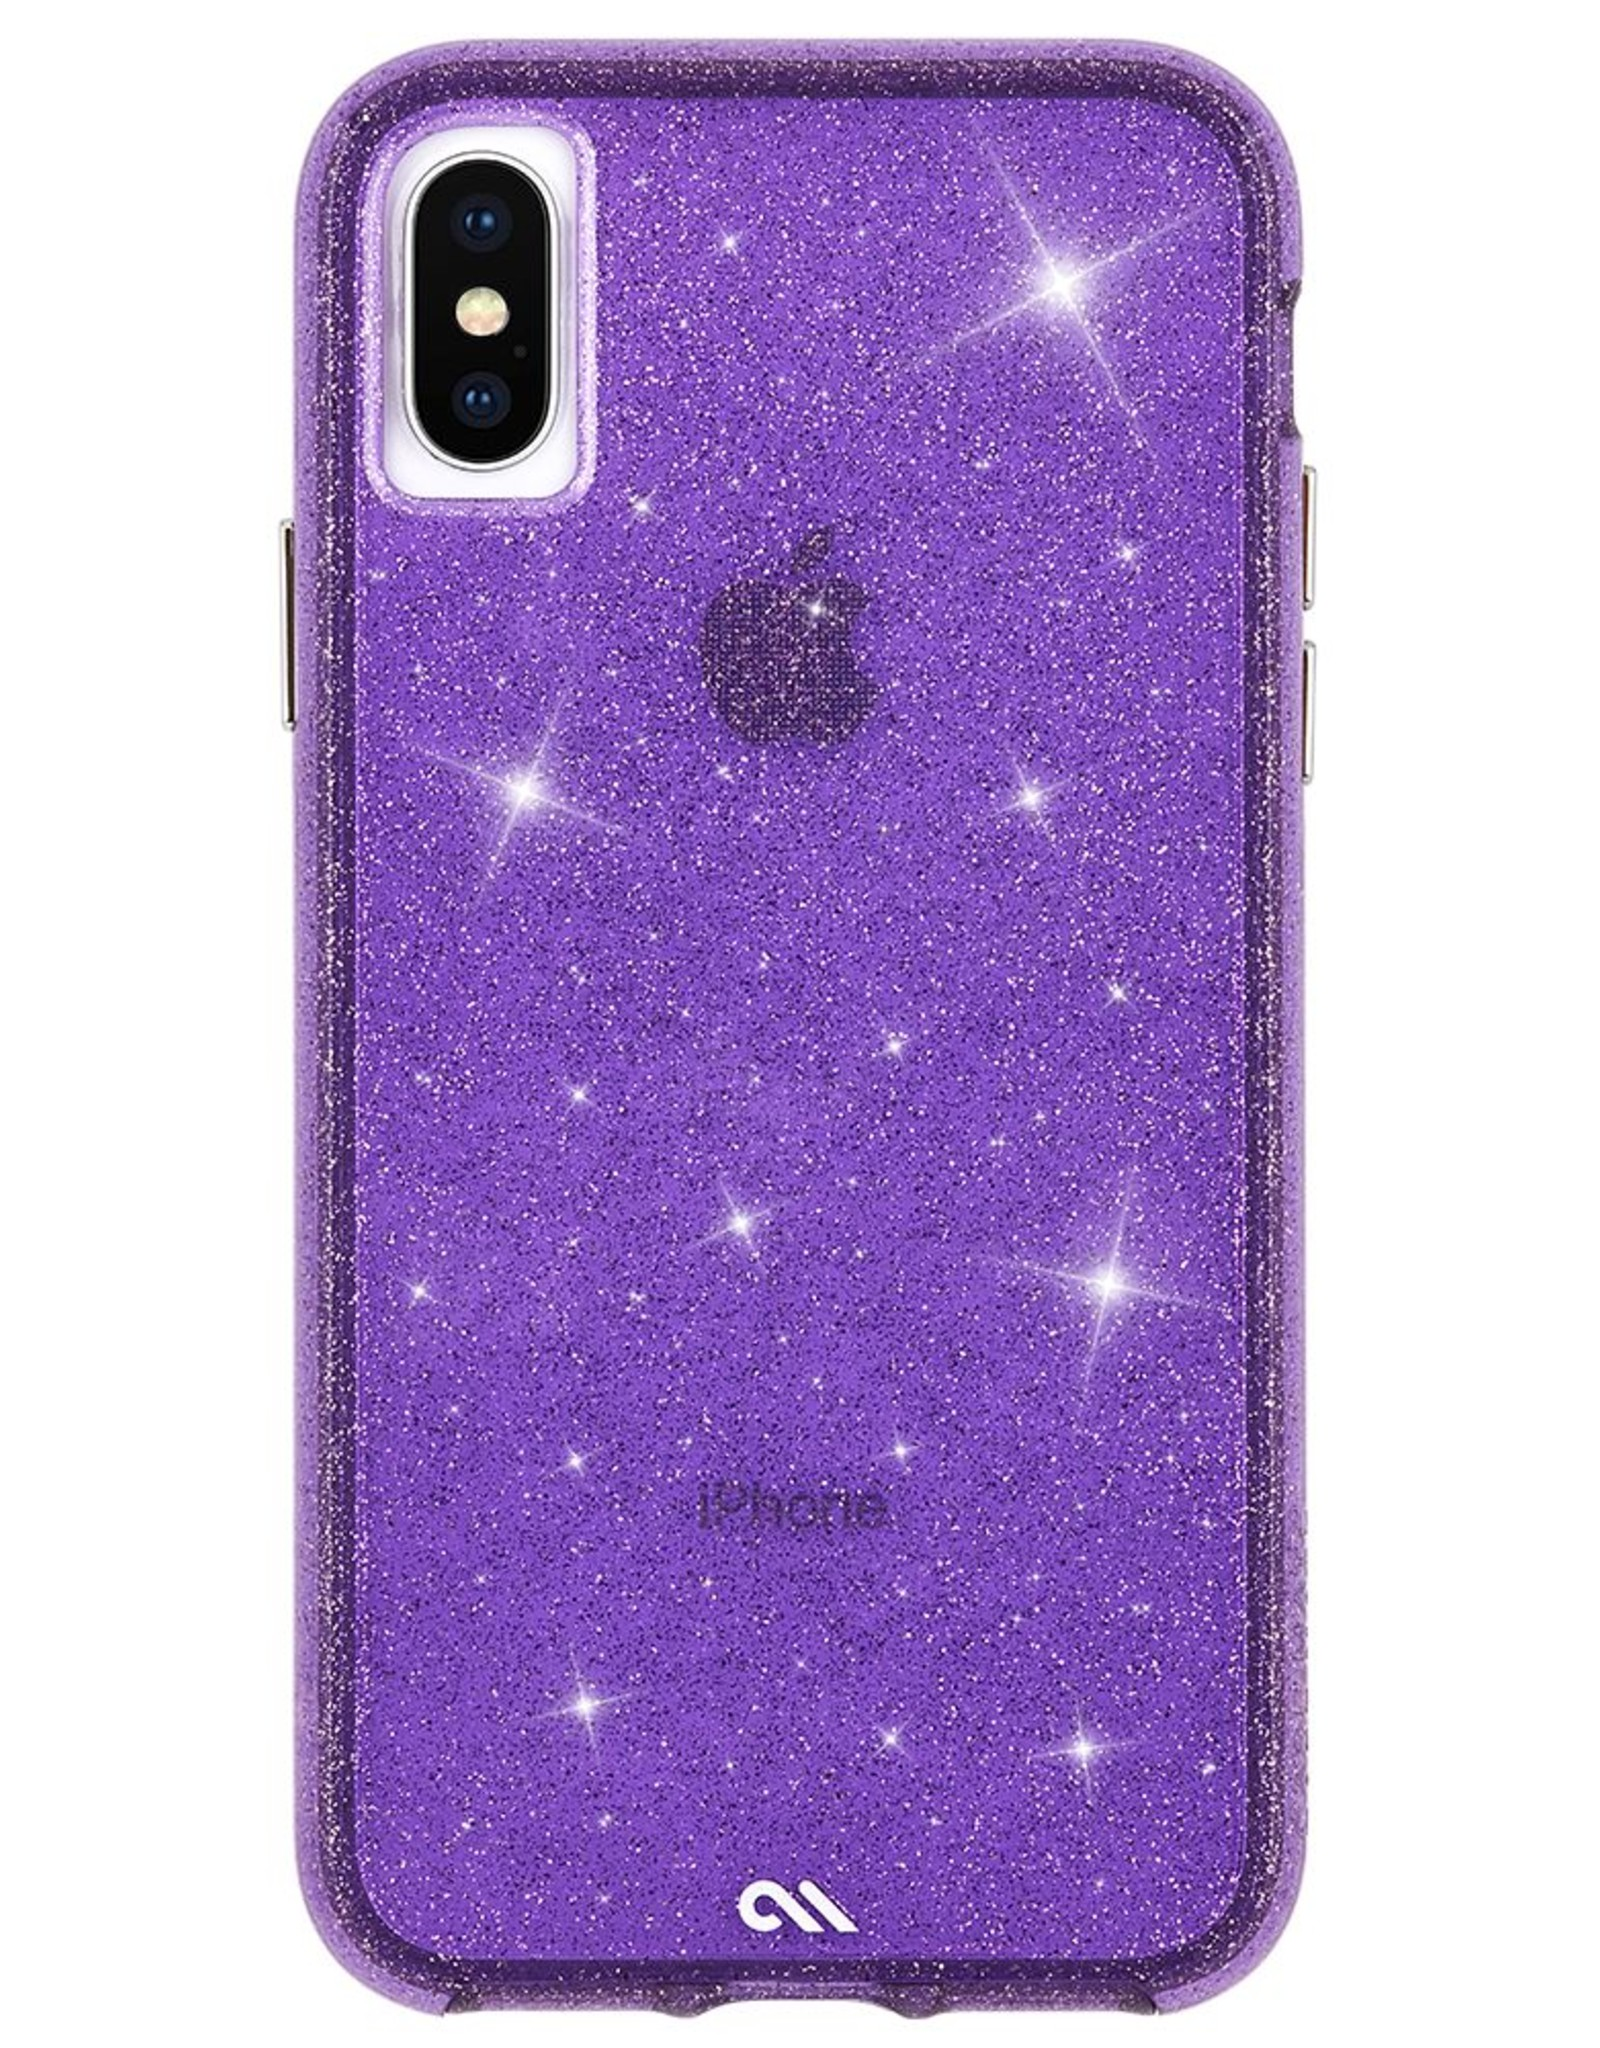 Case-Mate Case-mate   iPhone Xs Max Purple Sheer Crystal case   15-03691